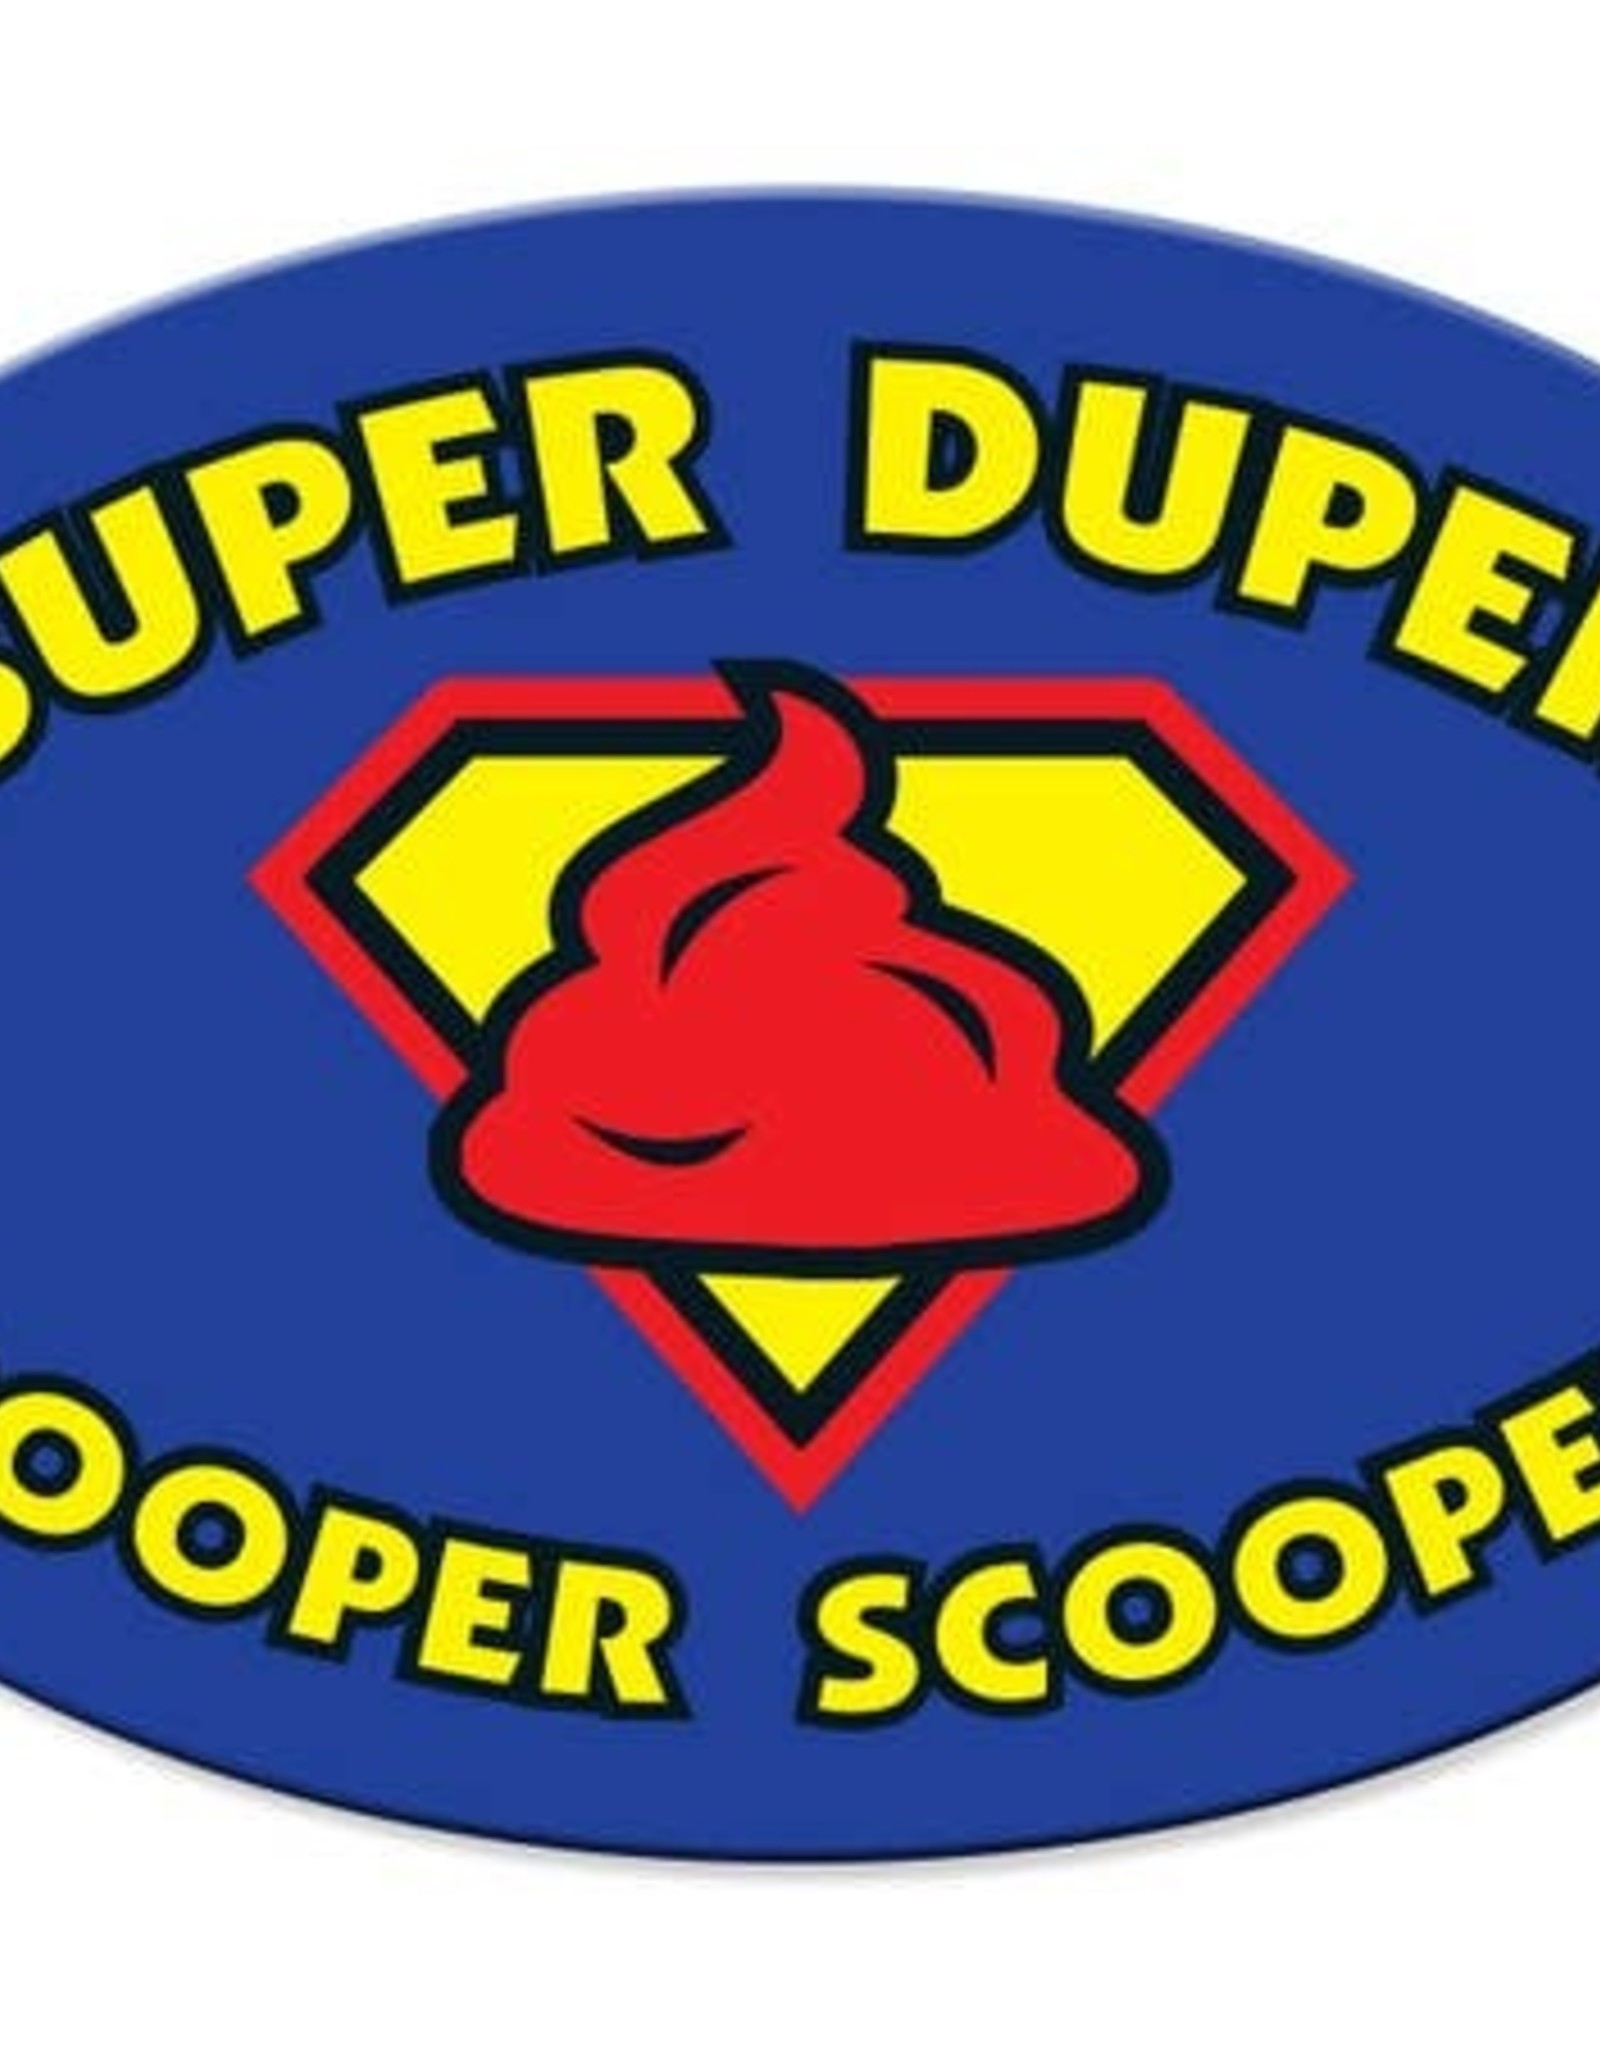 Dog Speak Car Magnet: Super Duper Pooper Scooper